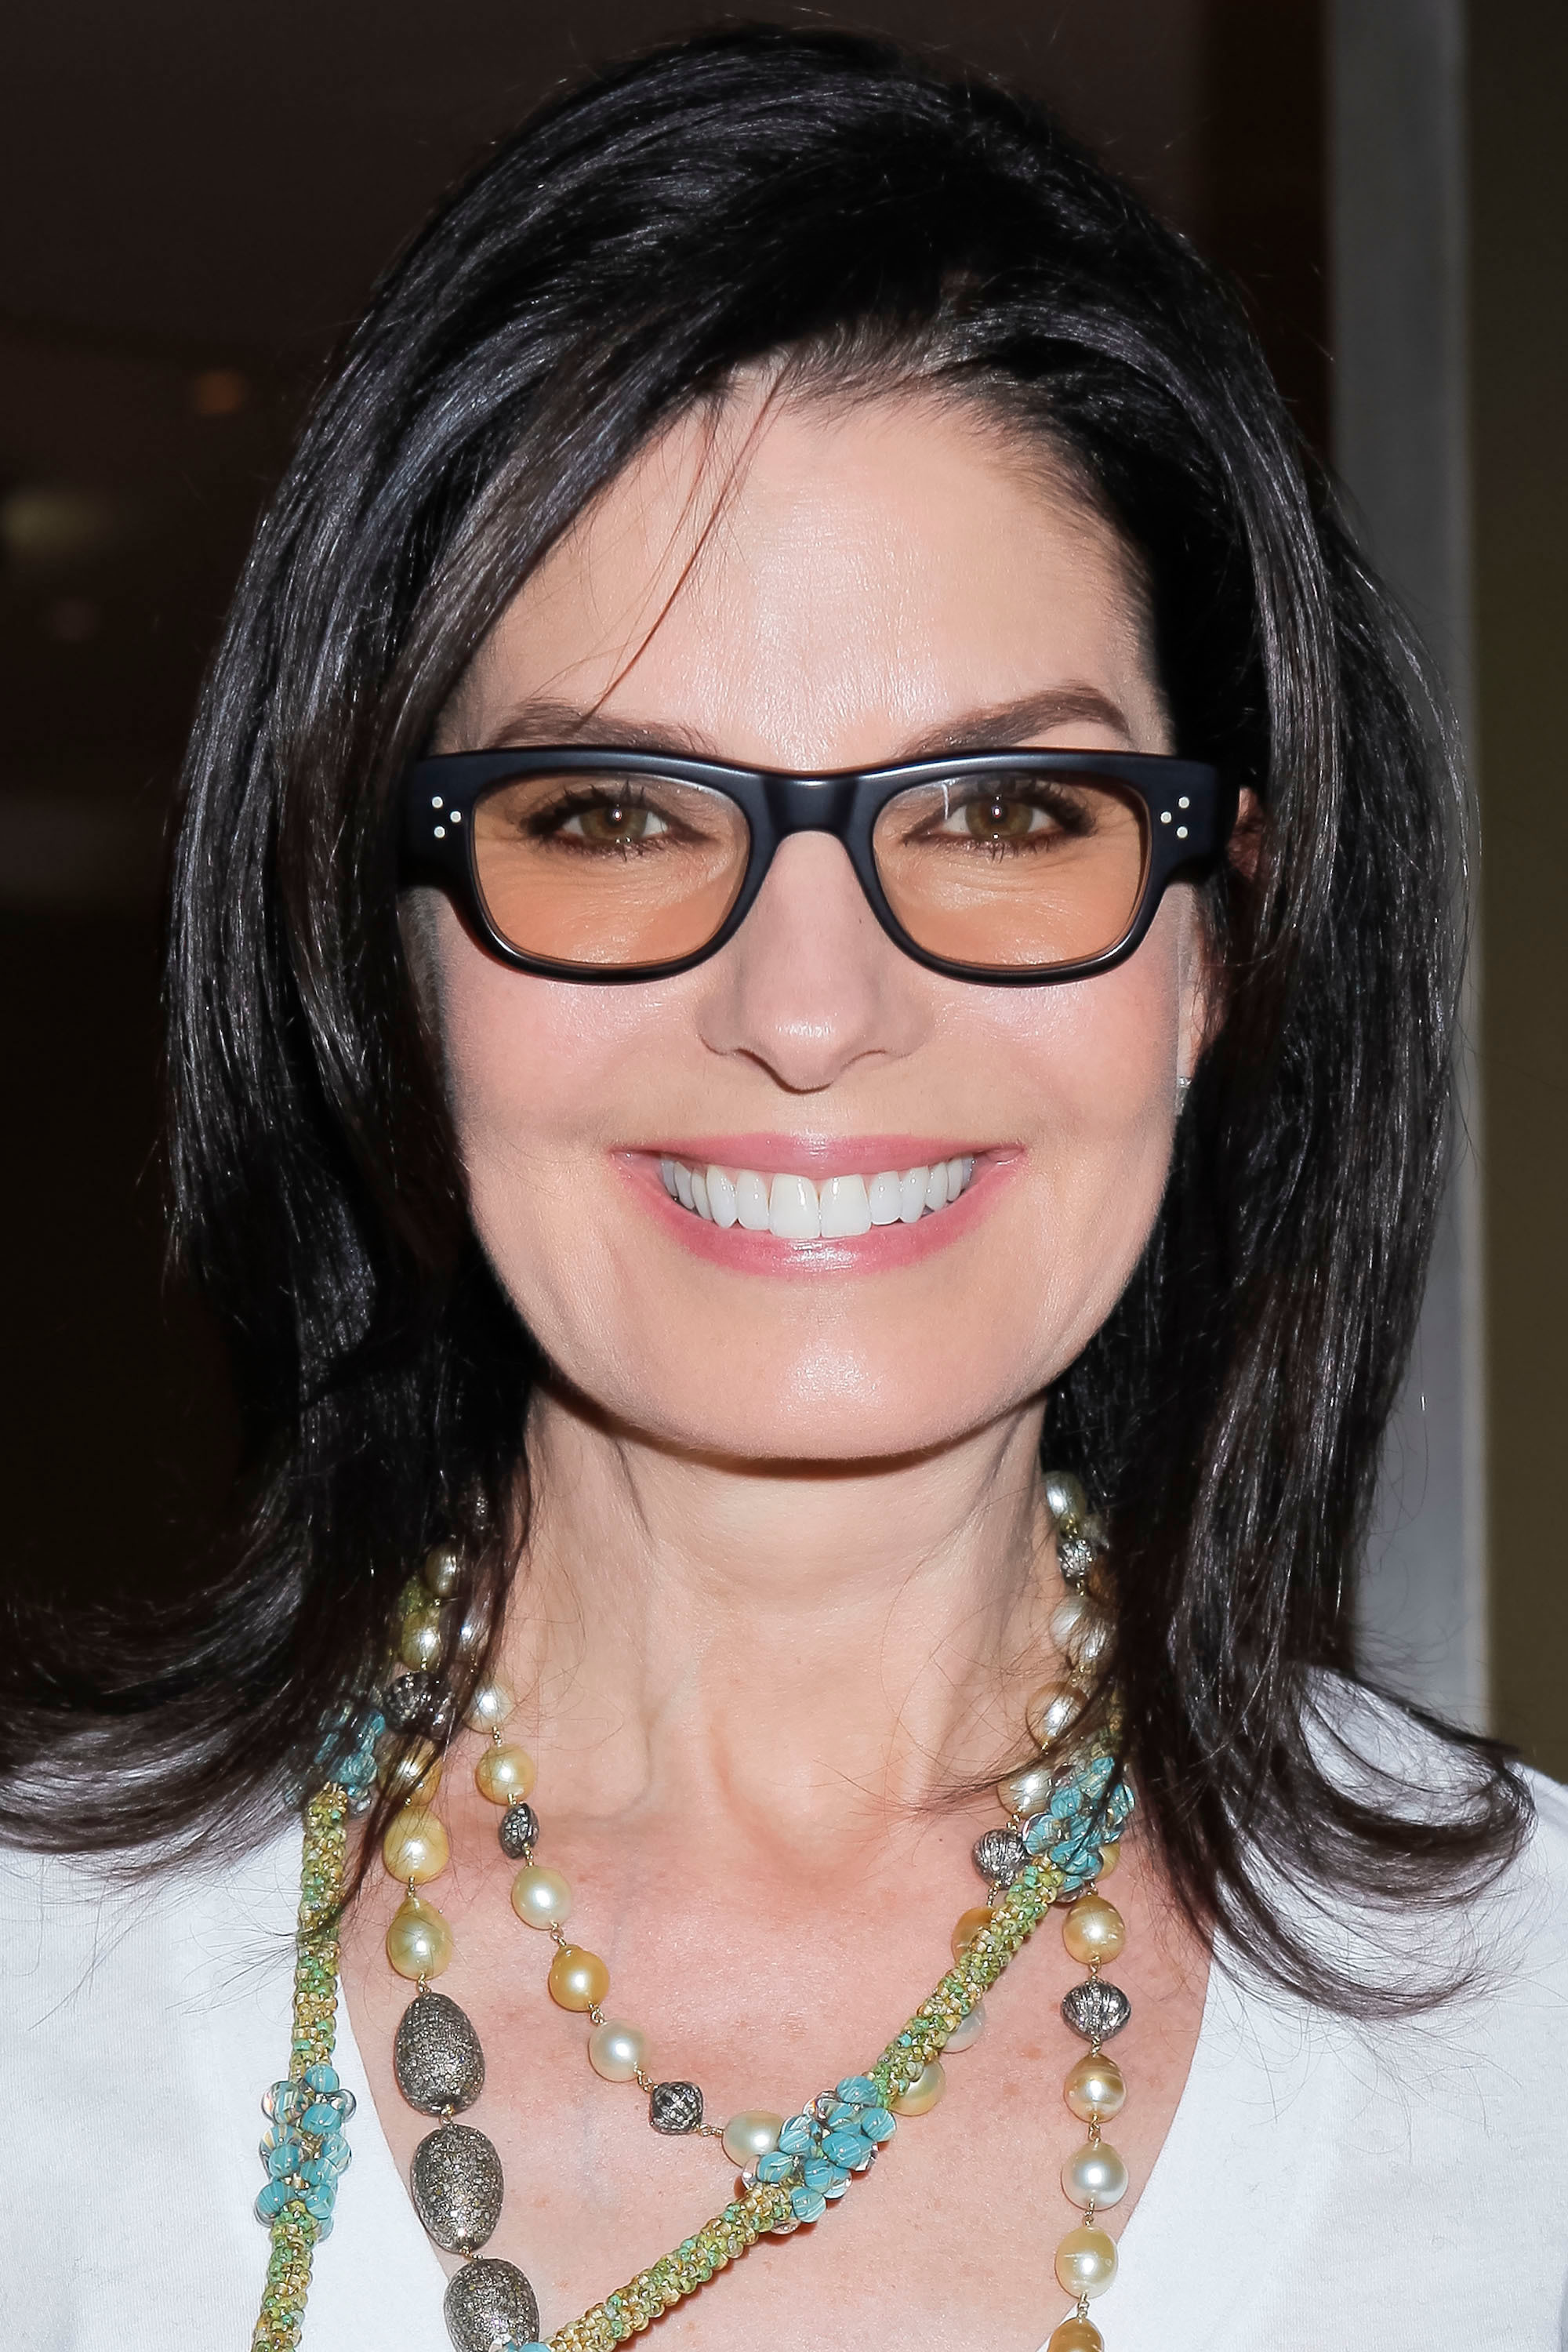 Haircuts For Women Over 50 With Glasses Stylebistro